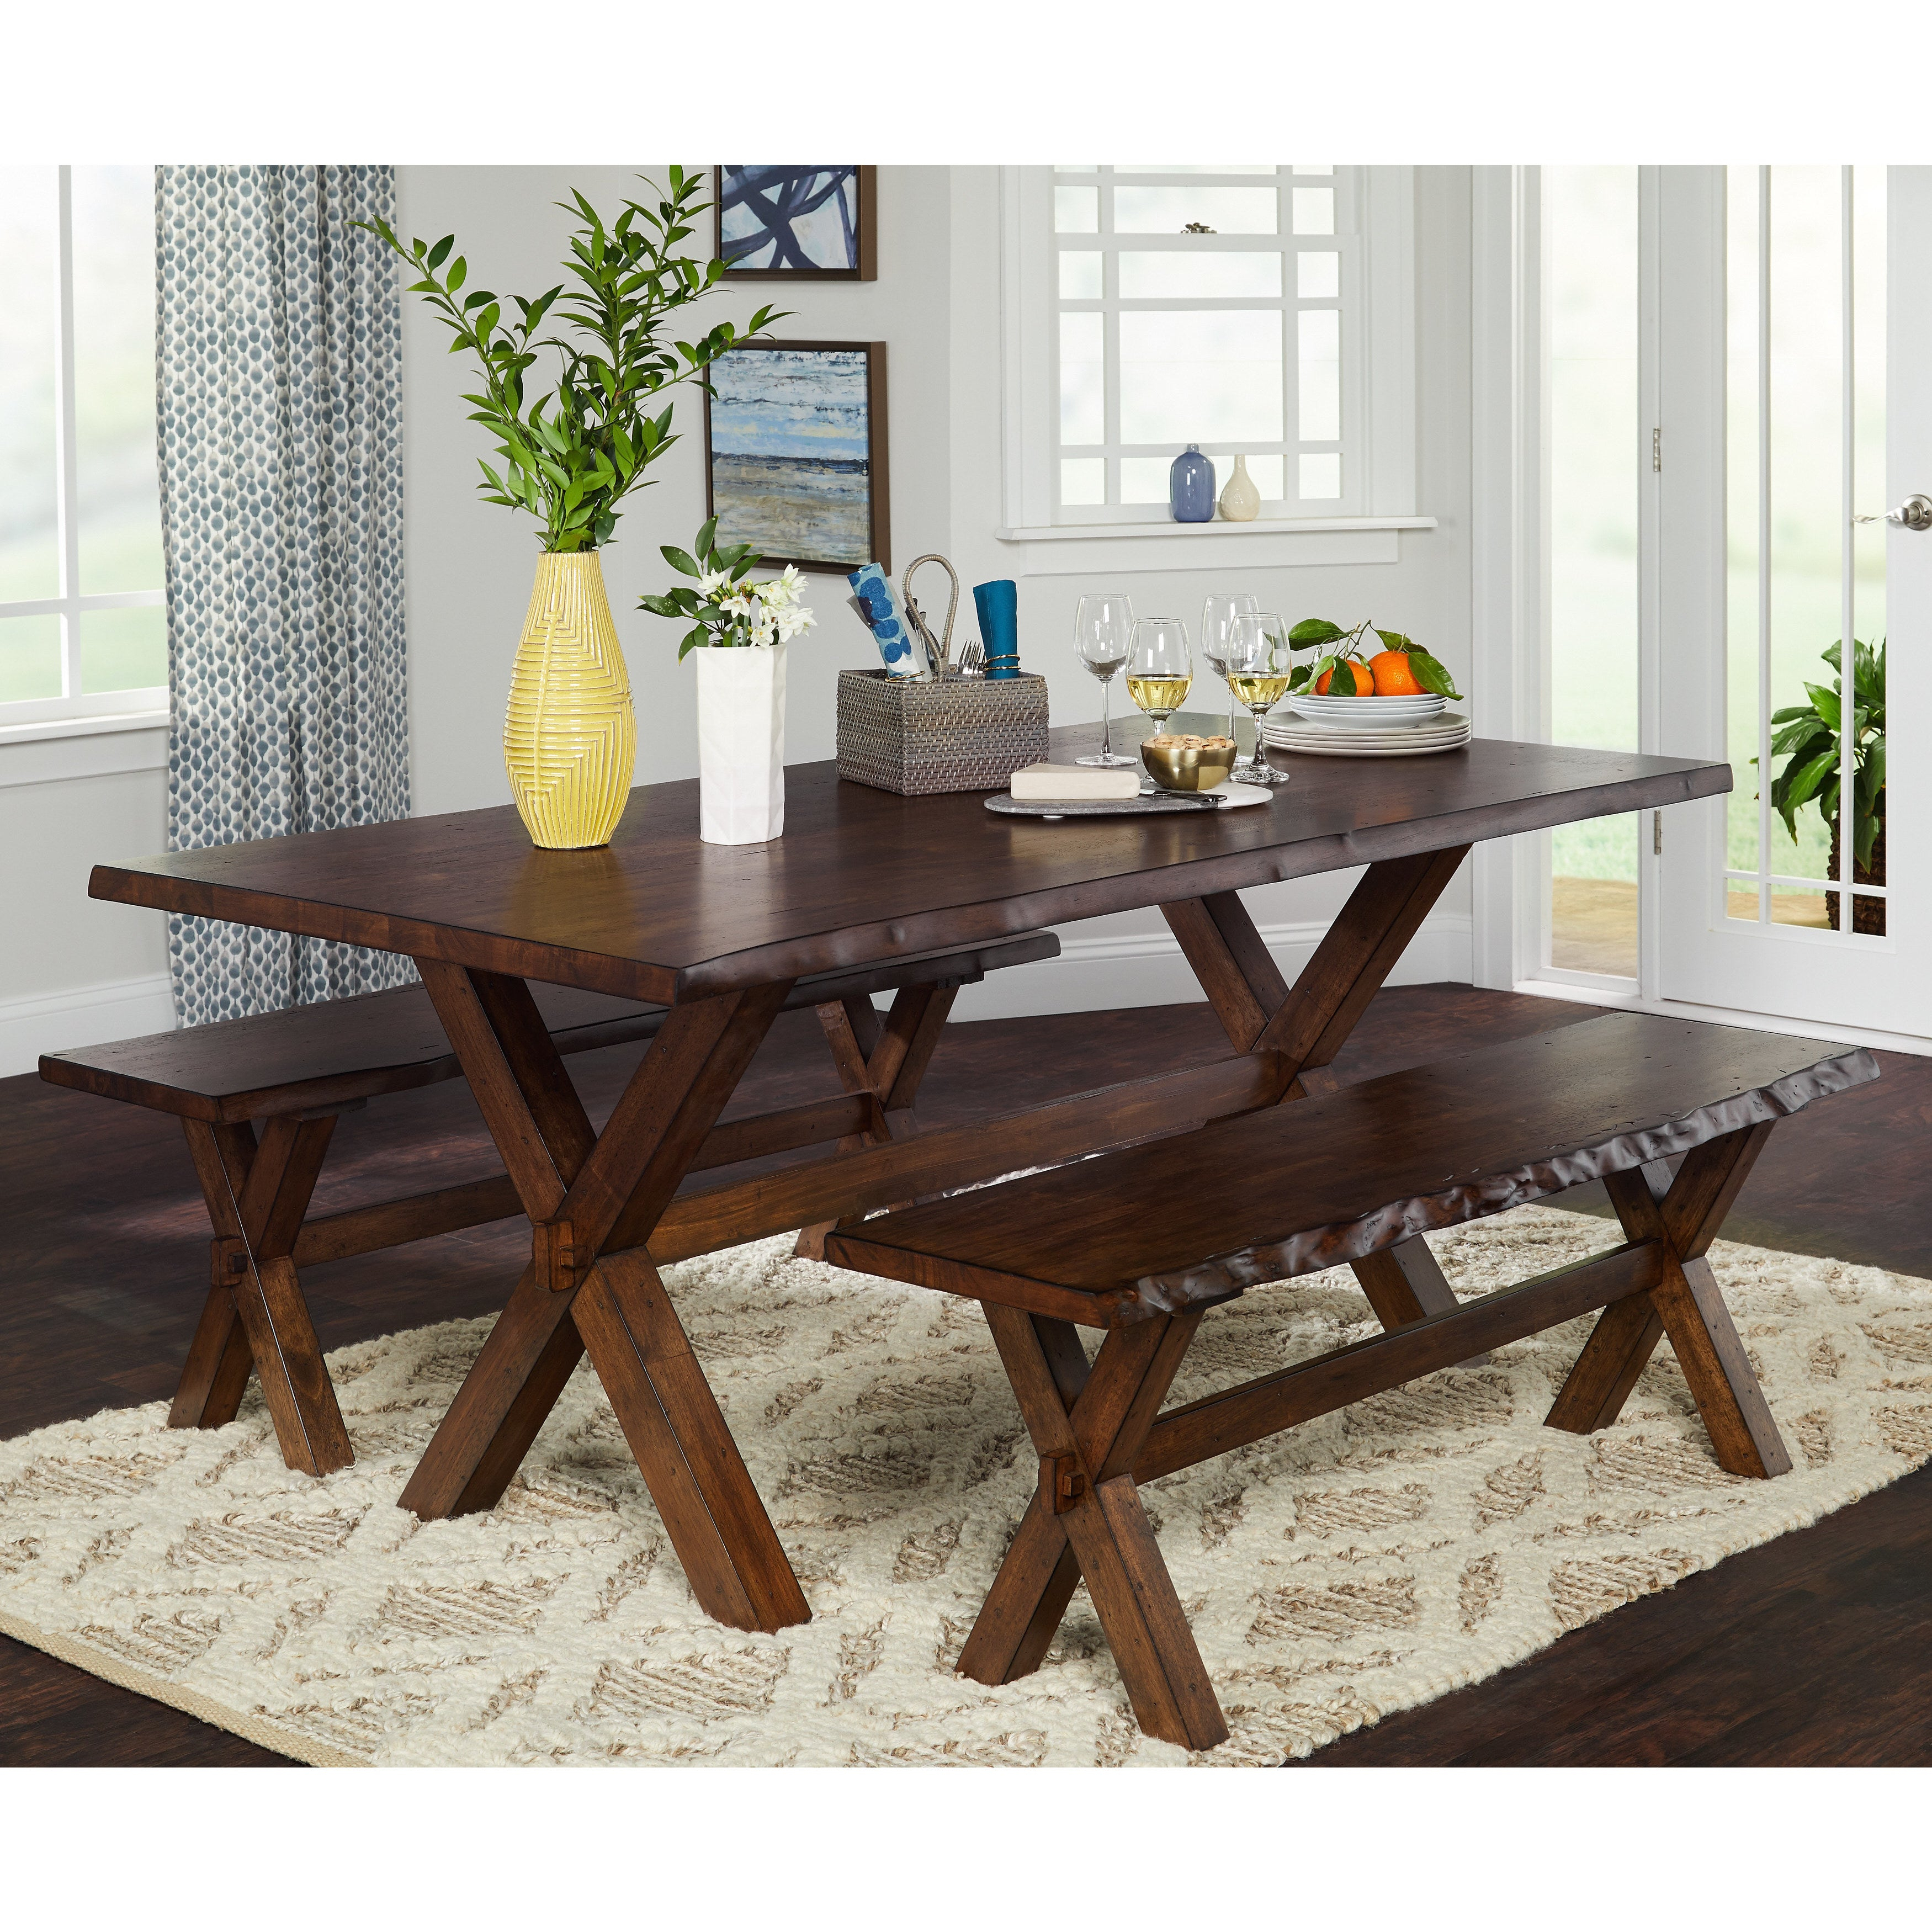 Buy Farmhouse Kitchen & Dining Room Sets Online At Overstock | Our With Regard To Newest Falmer 3 Piece Solid Wood Dining Sets (View 9 of 20)